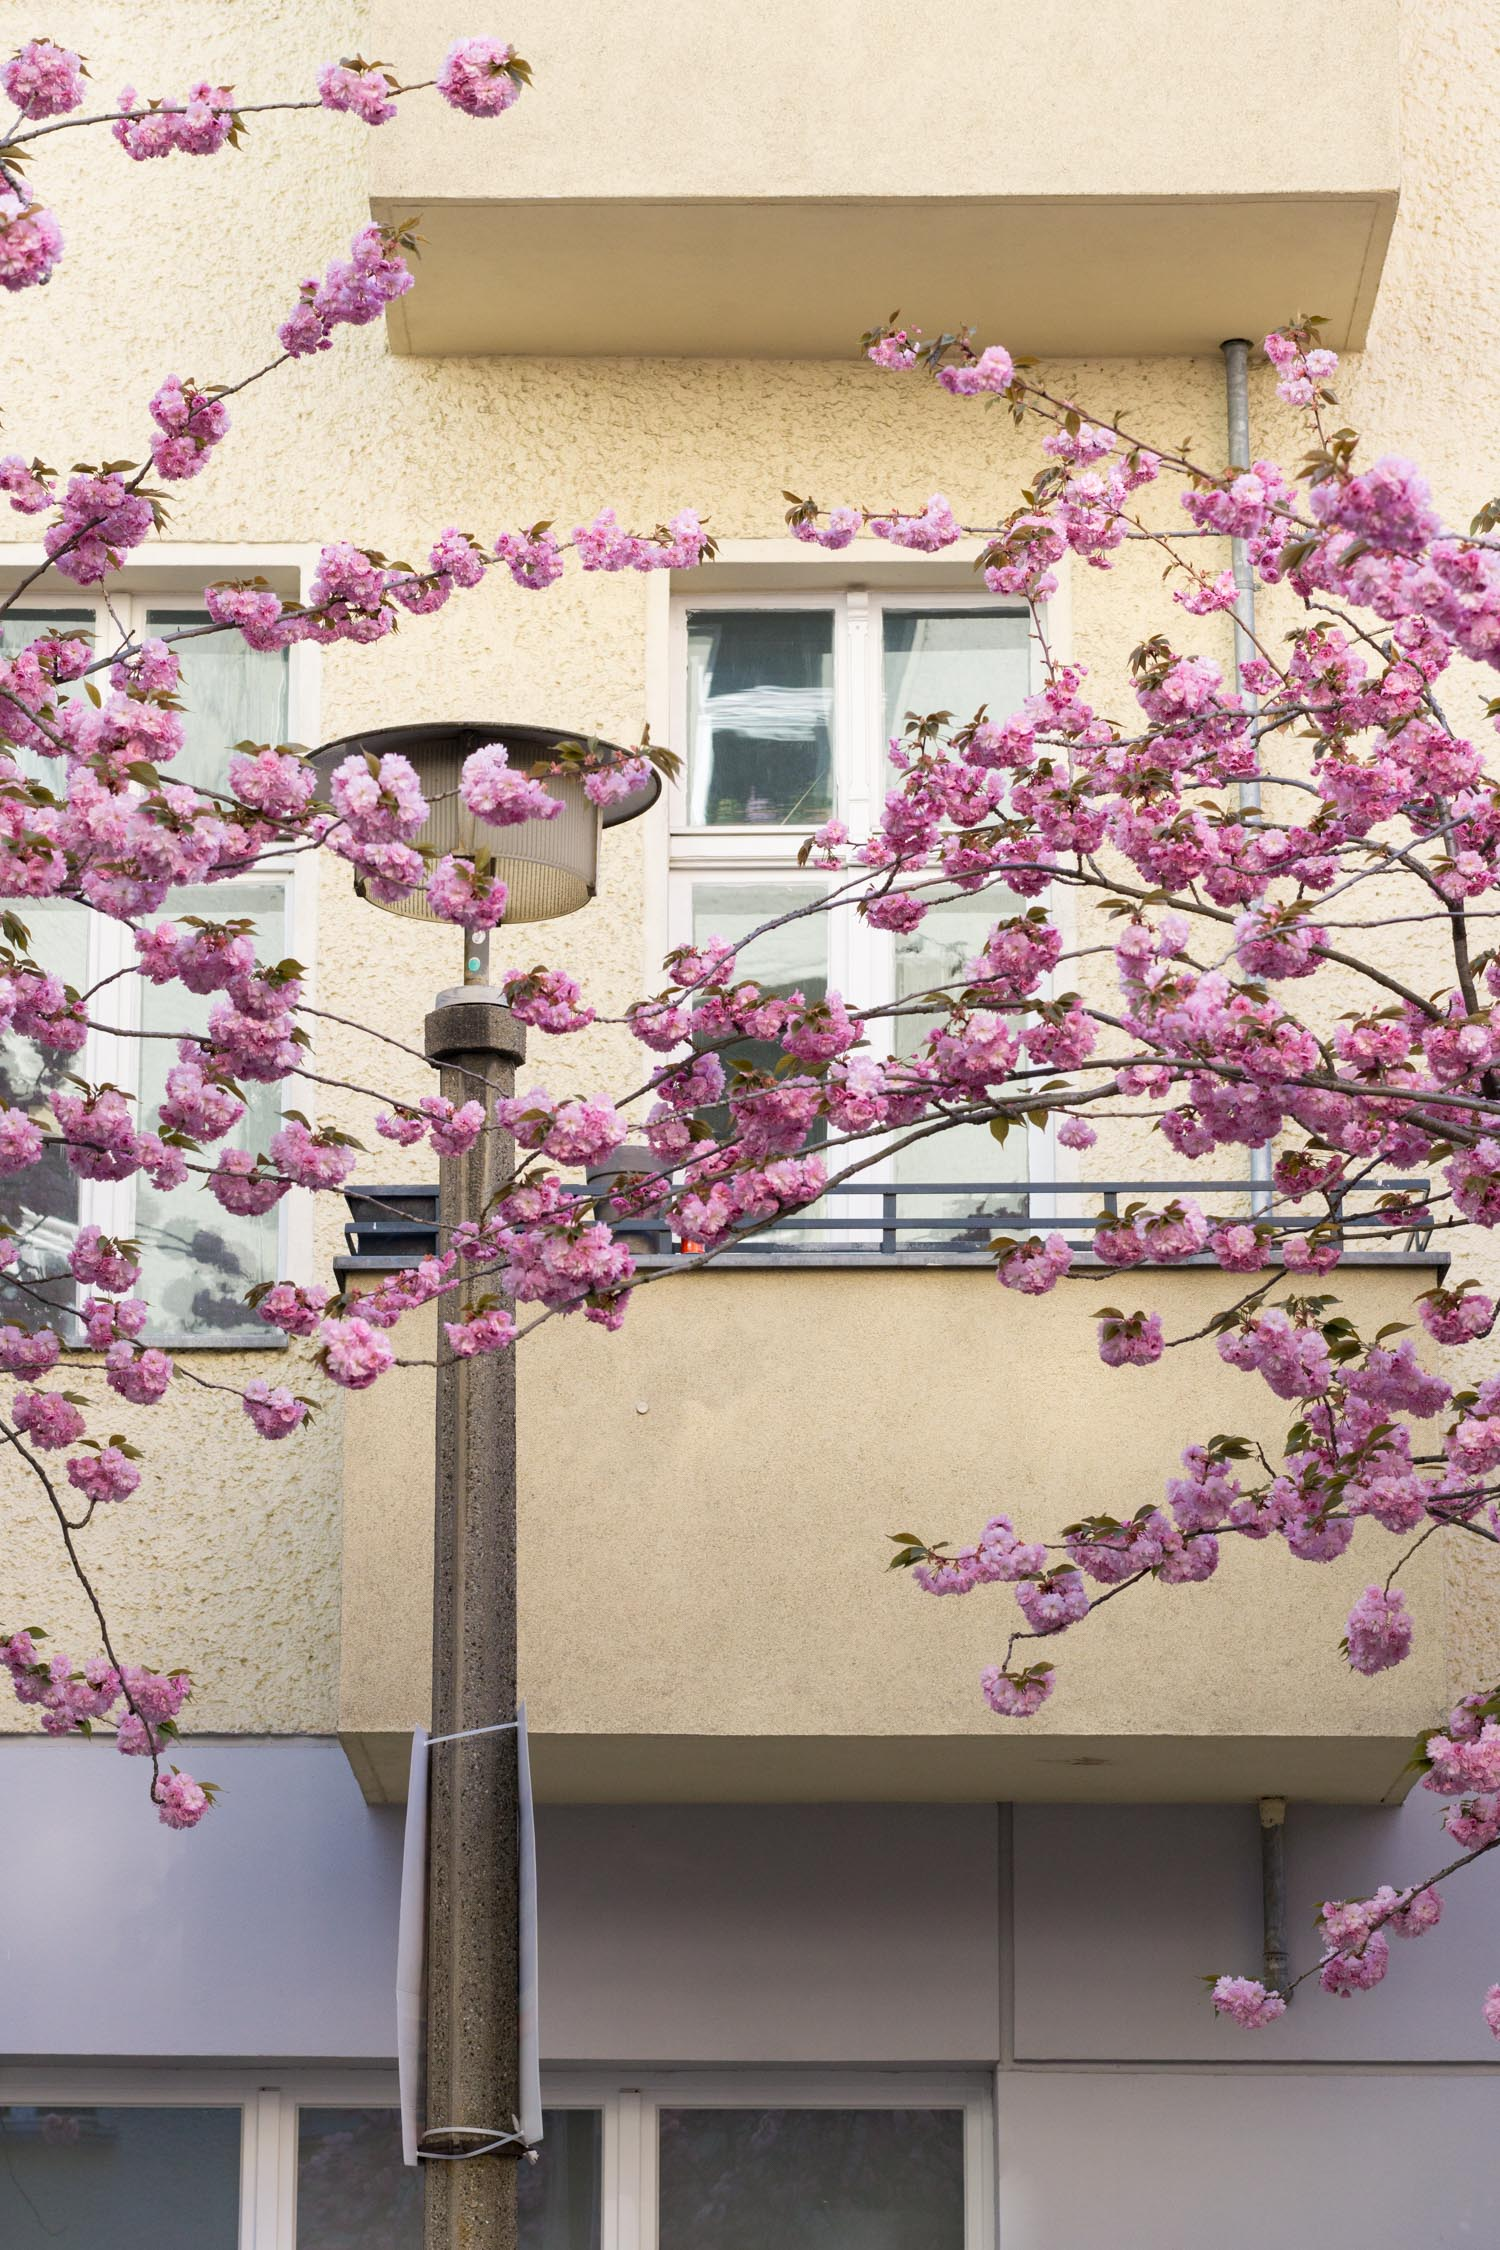 Discover the best places to experience cherry blossom season in Berlin. | Cherry Blossom Season | Berlin Travel Guide | Cherry Blossoms | Berlin Germany | Christie Moore Photography